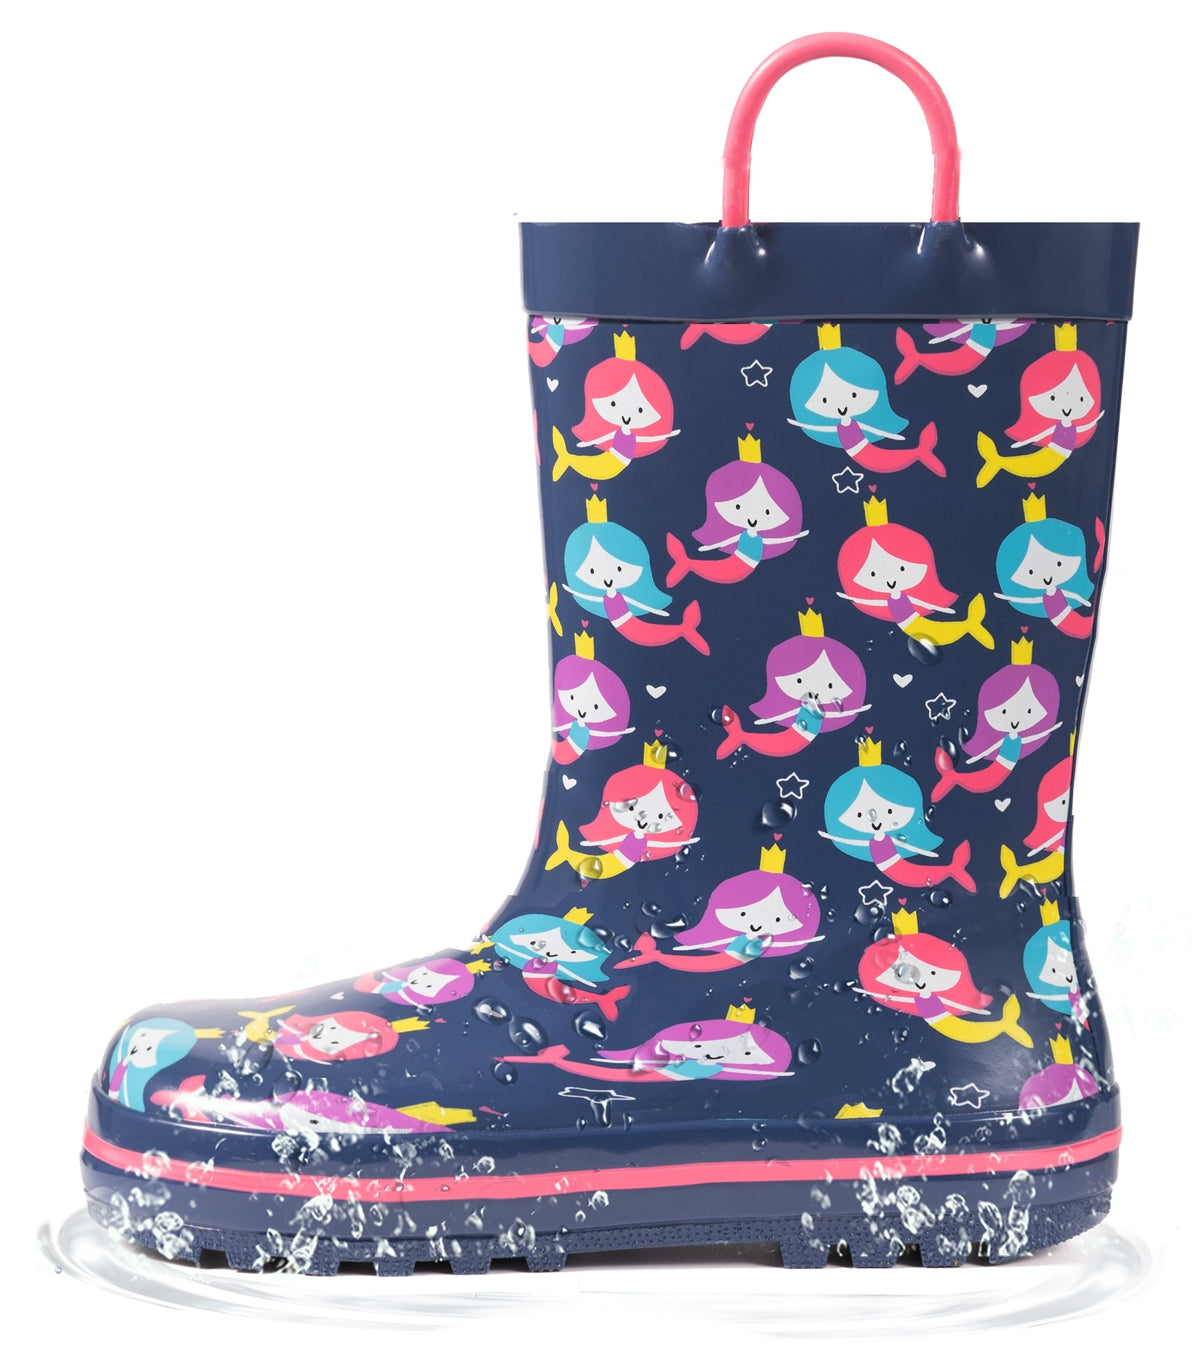 Outee Toddler Kids Girls Rubber Rain Boots Cute Printed with Easy-On Handles - Blue Mermaid